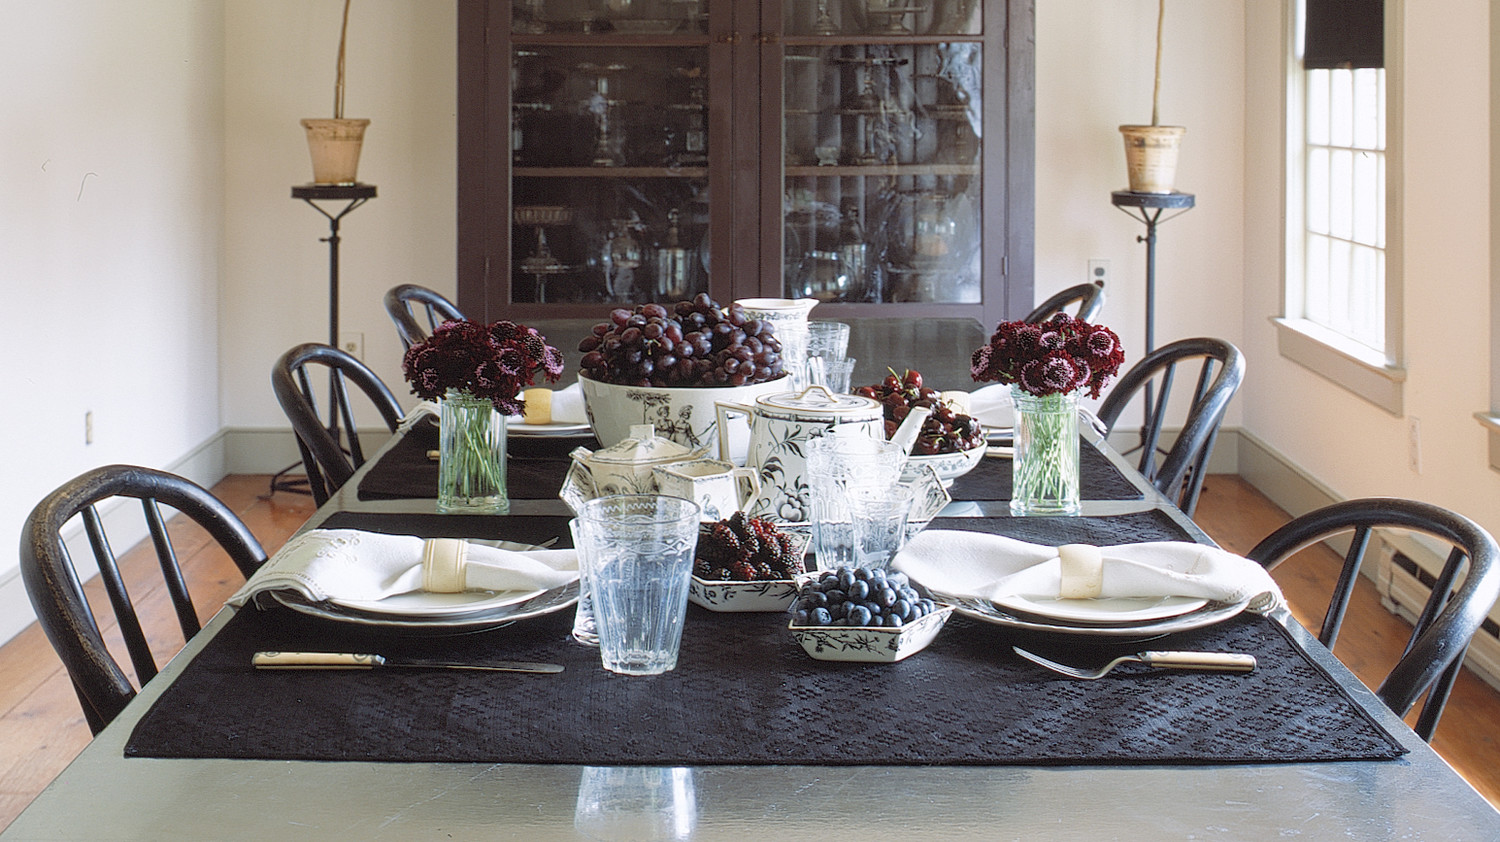 Marthau0027s Turkey Hill Dining Room: 5 Bold Ideas For Decorating With Black | Martha  Stewart